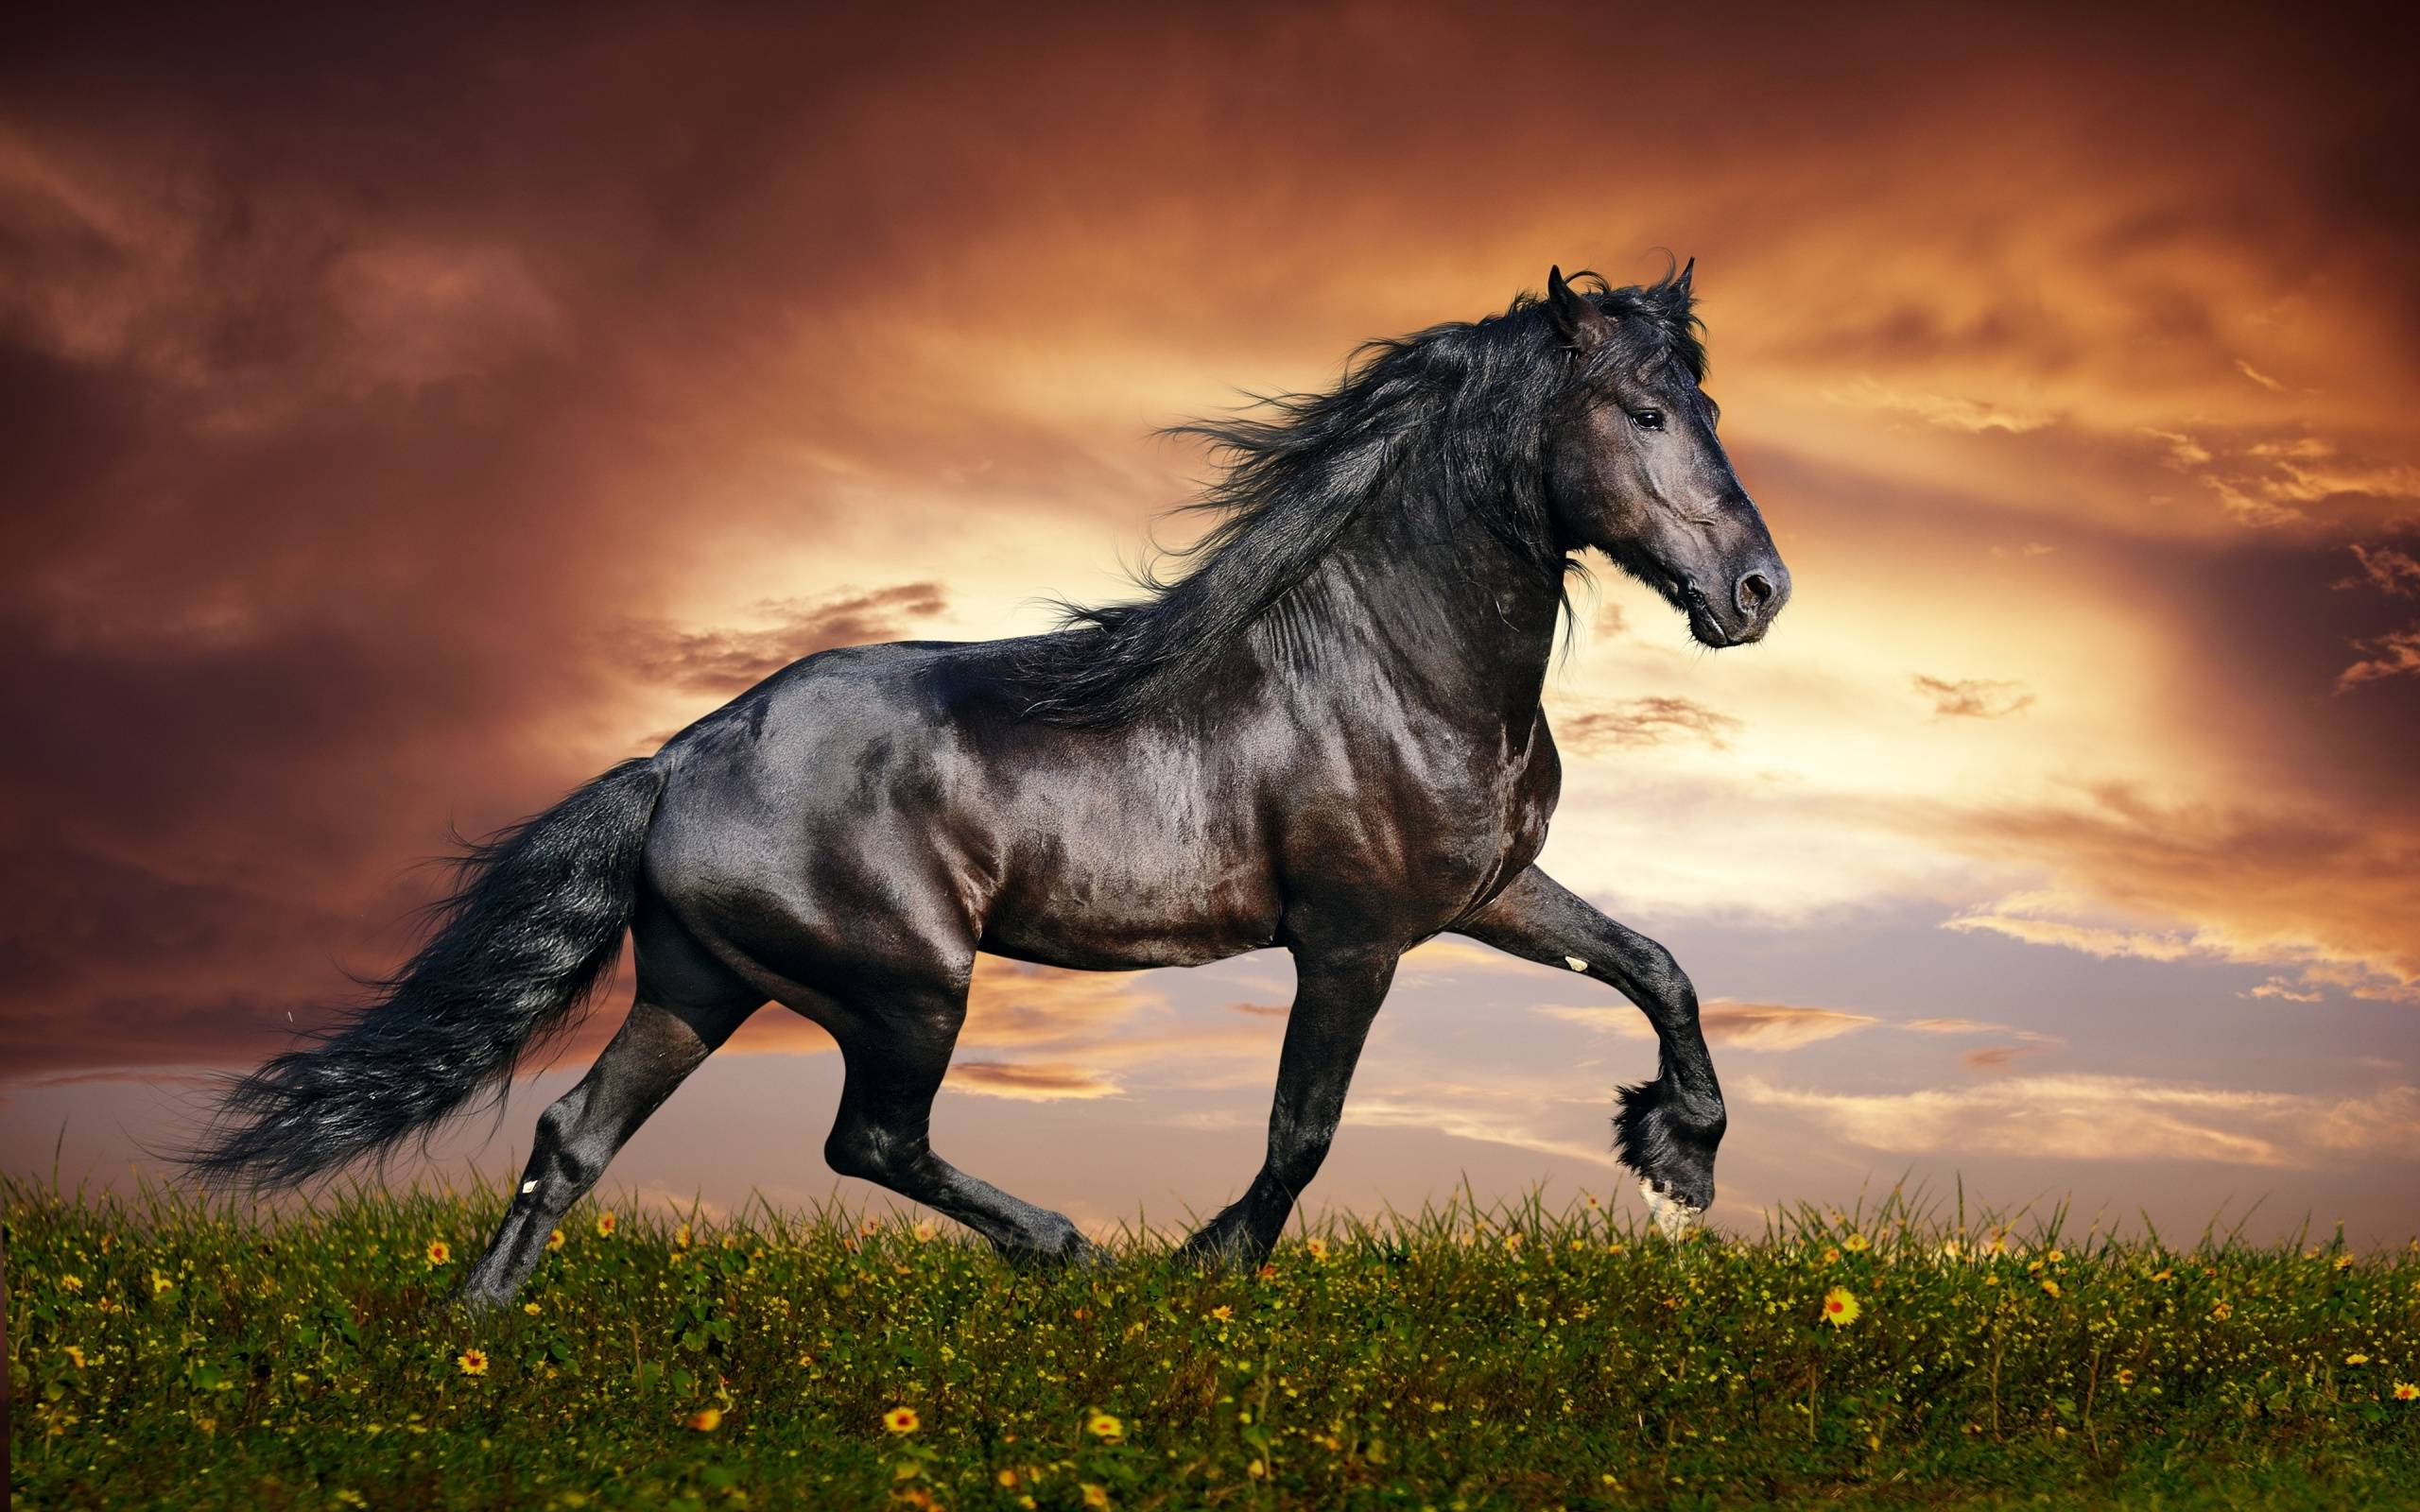 Horse Wallpapers  Full HD wallpaper search